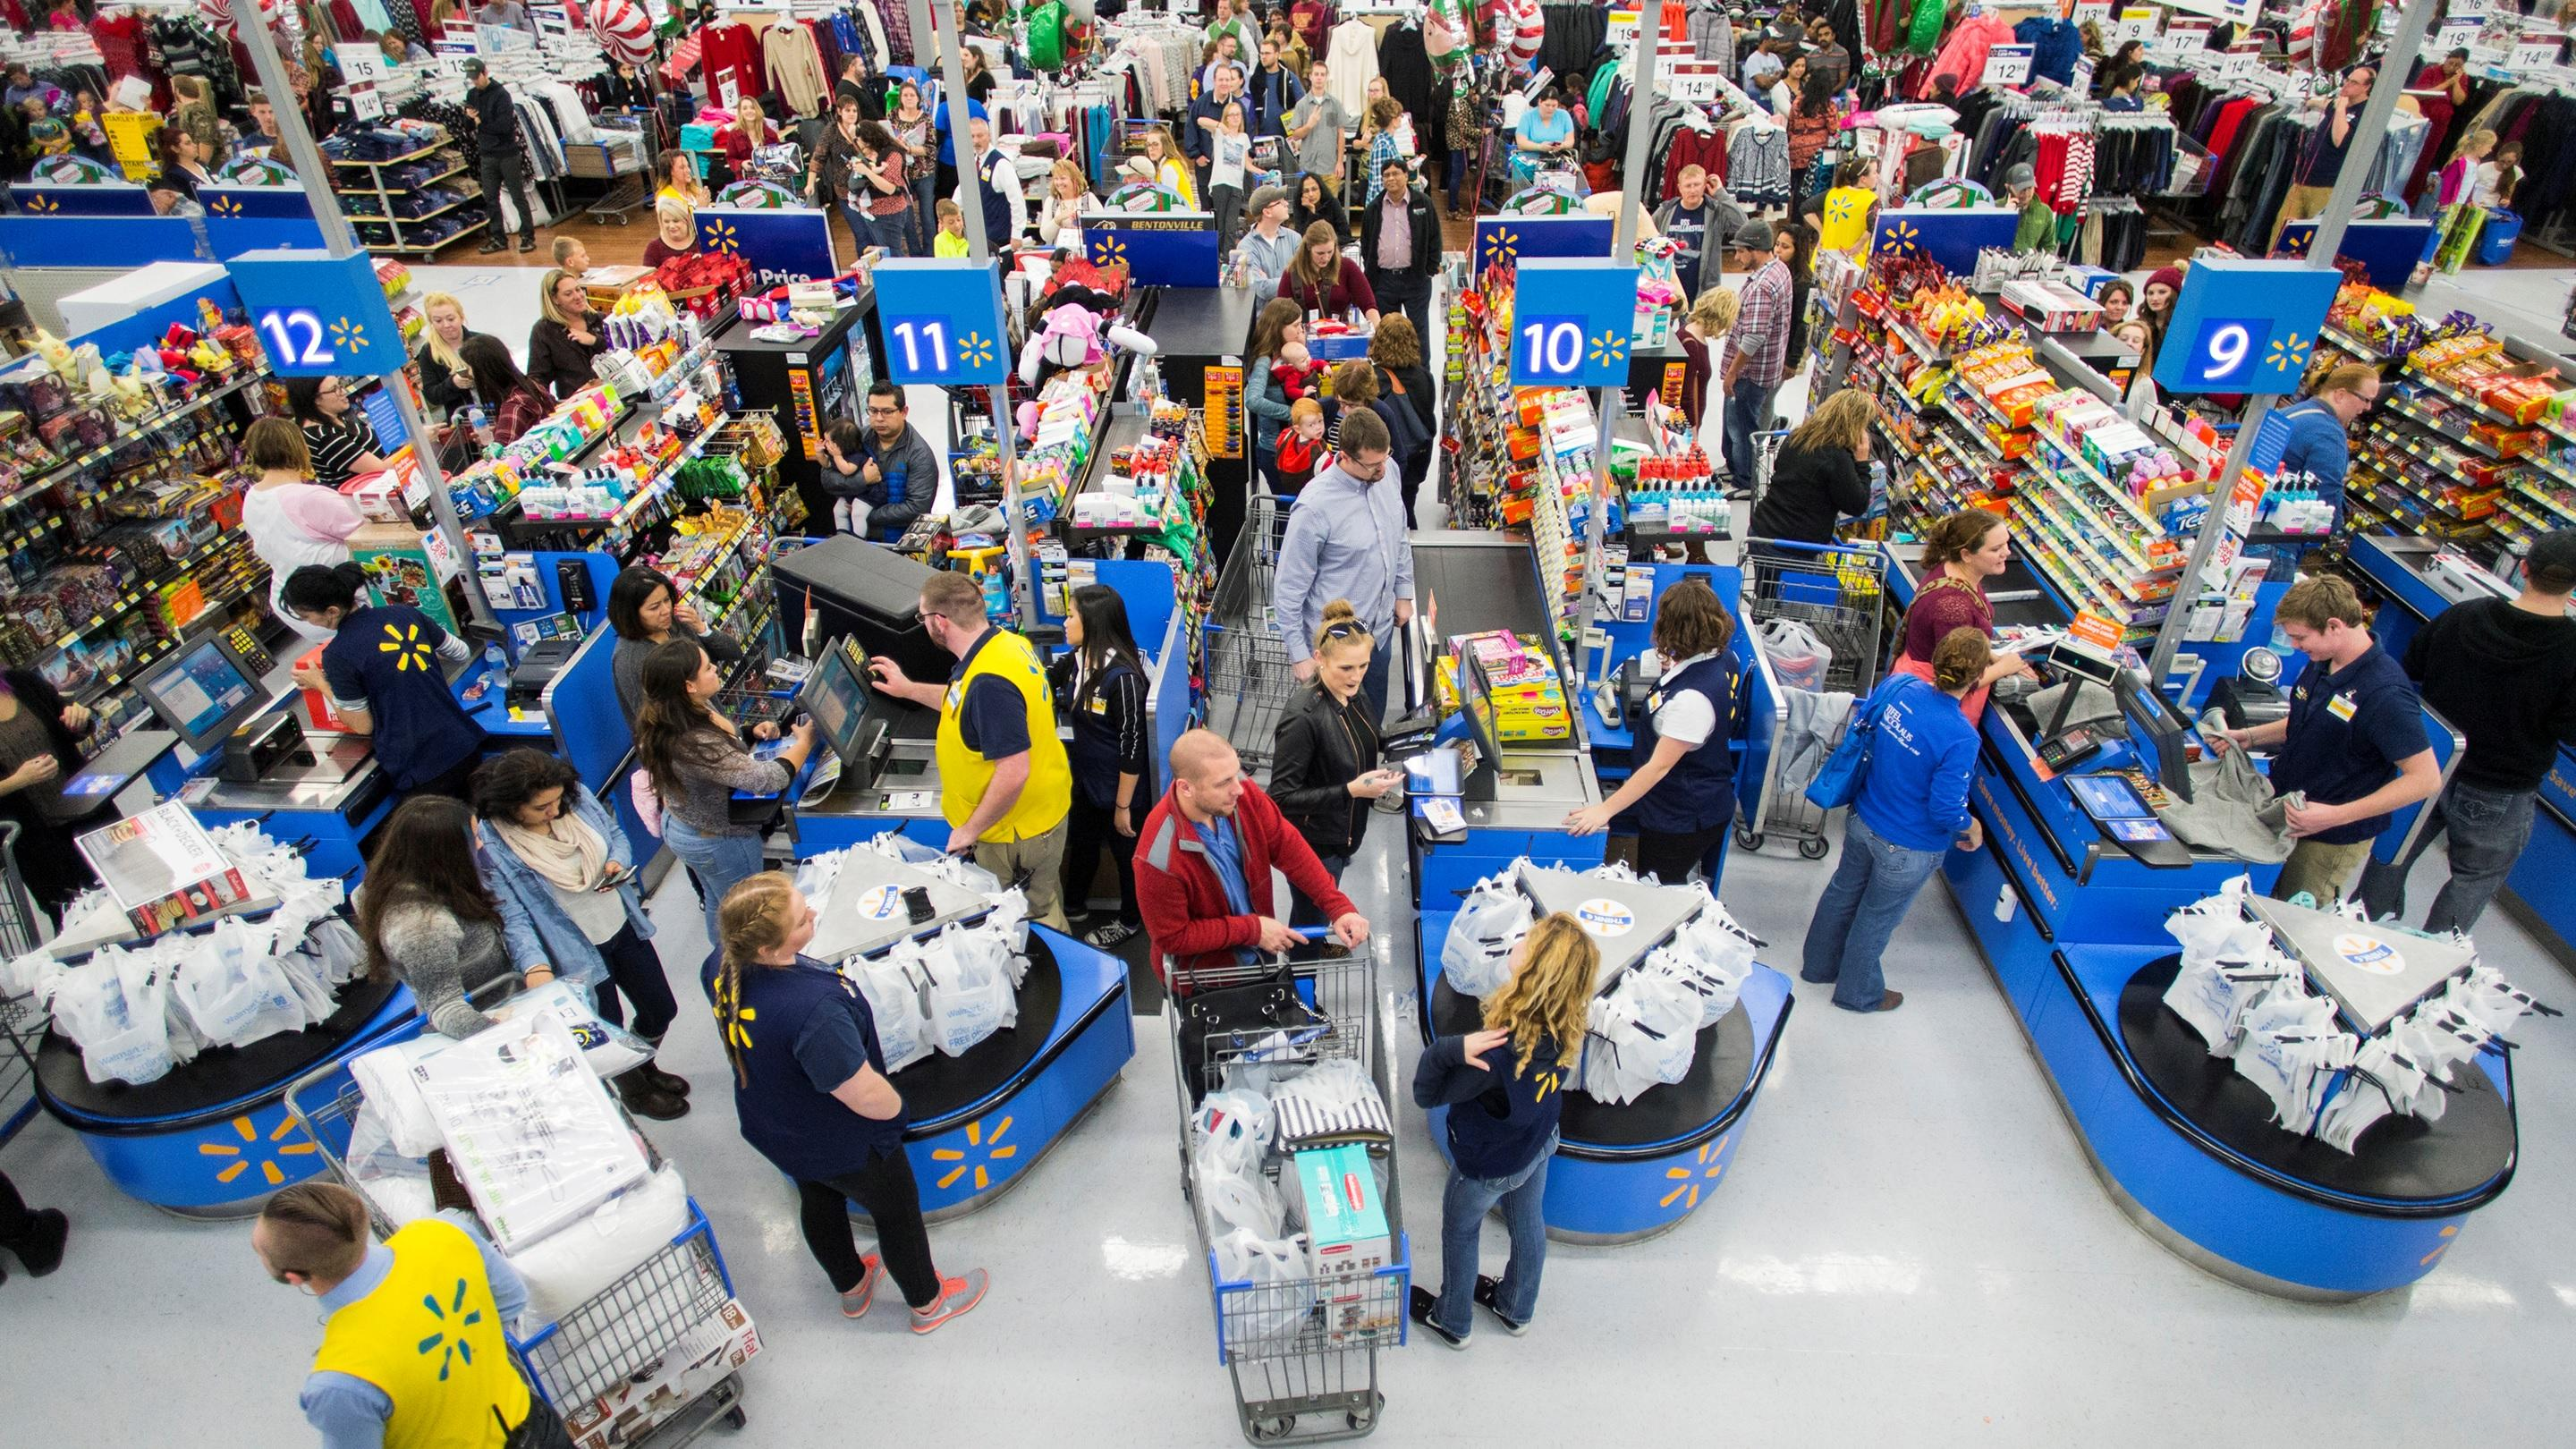 Wal-Mart Sales Rise as Retailer Dodges Industry Malaise